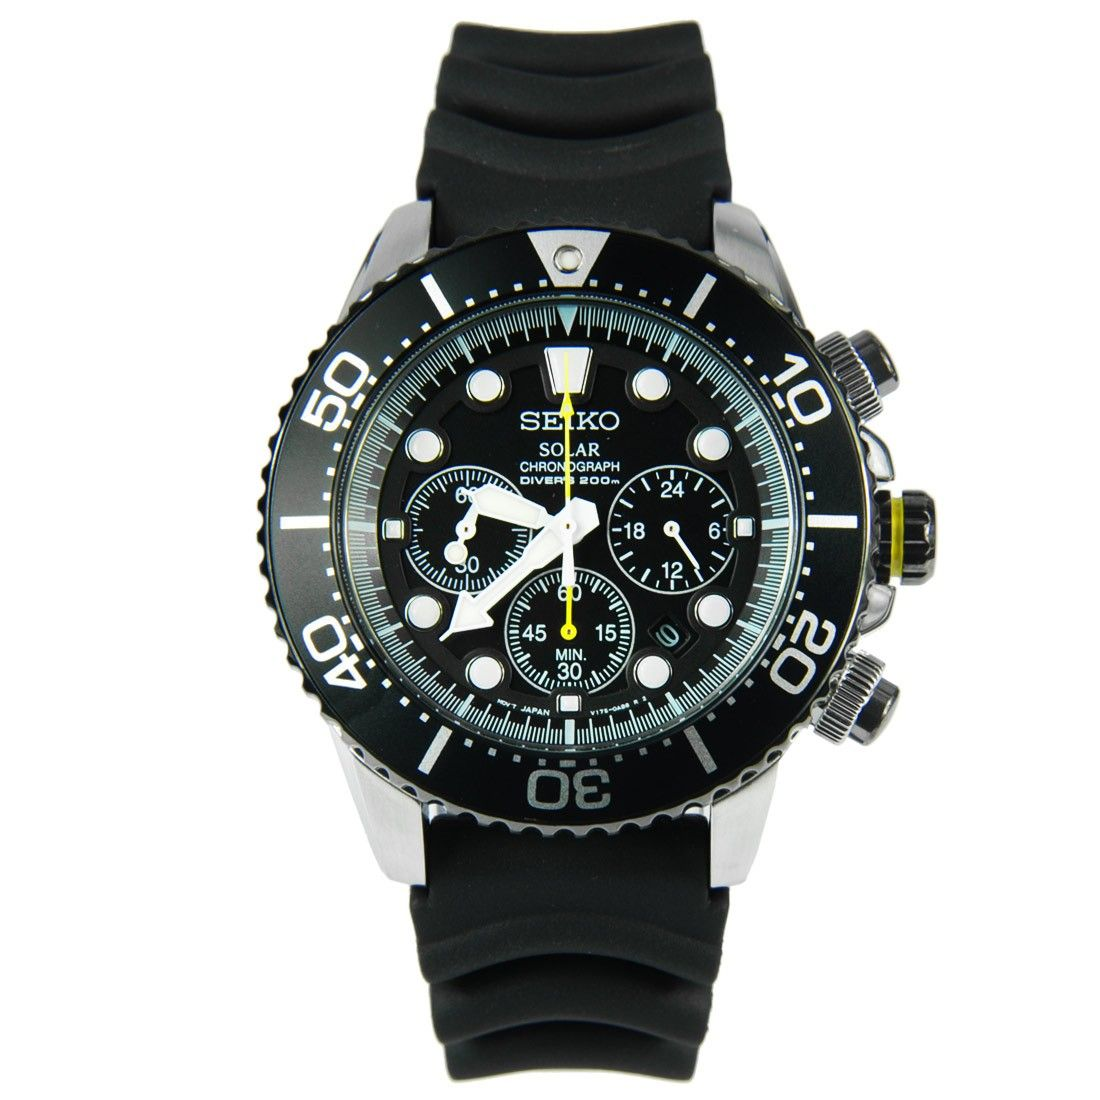 new product 43df7 780bc Seiko Solar Chronograph Diver Watch SSC021 SSC021P1   Stuff ...